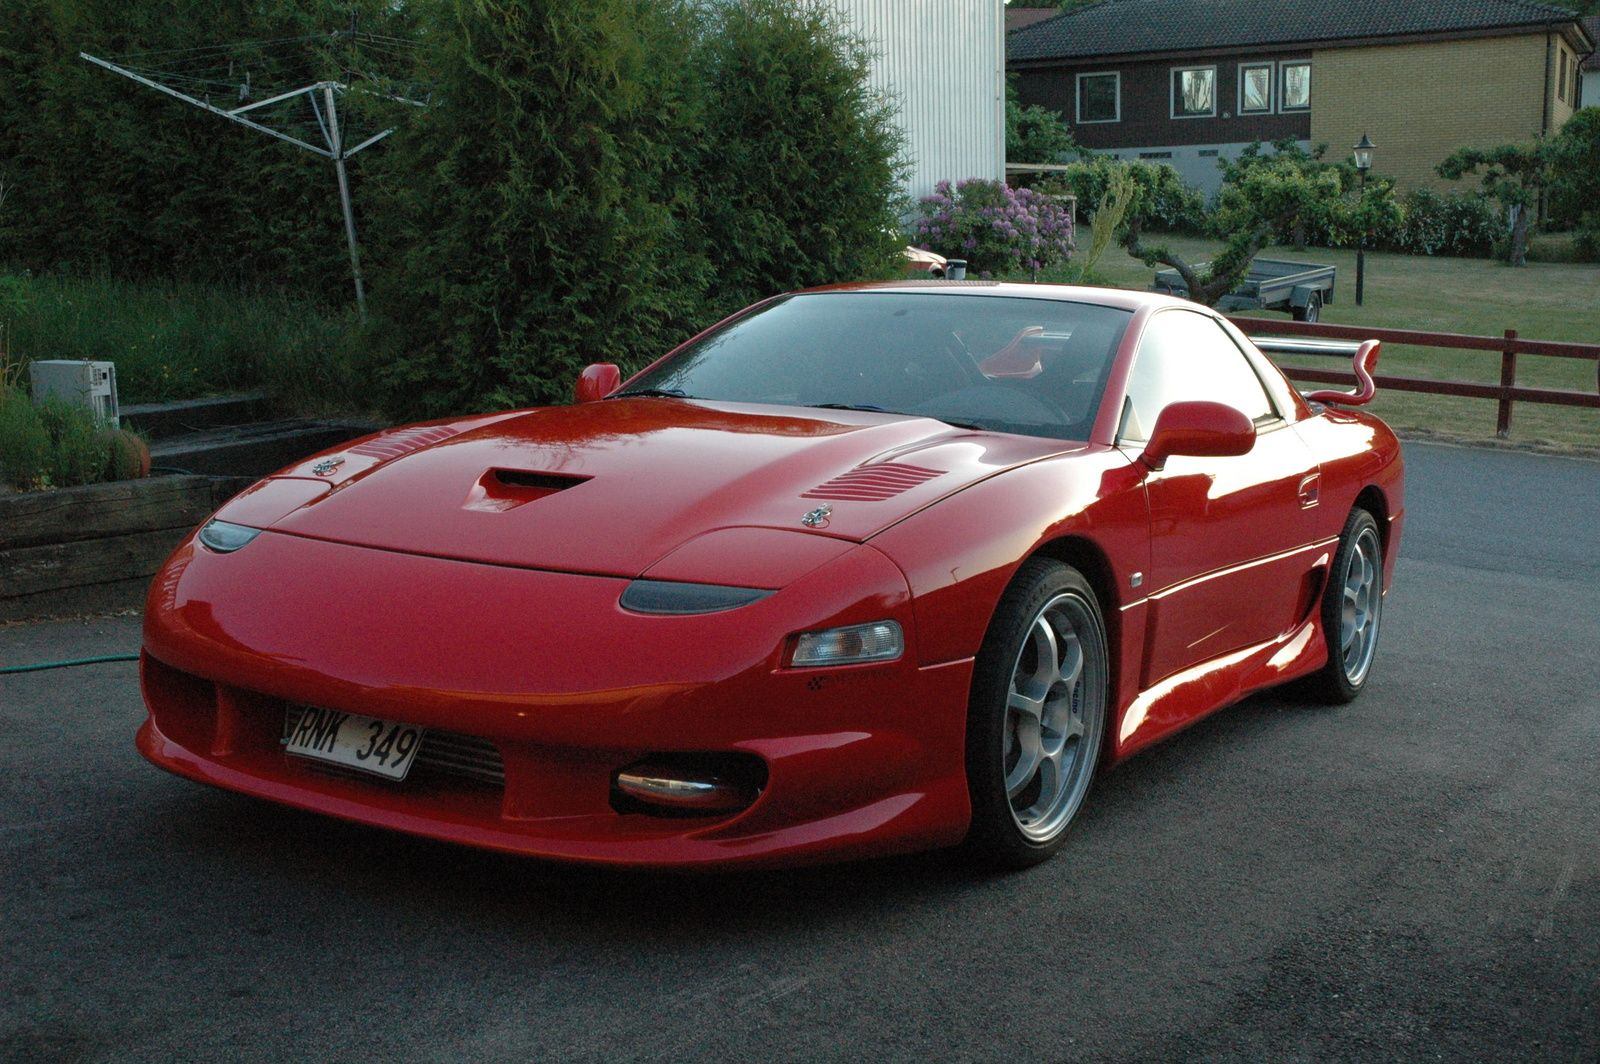 1992 mitsubishi 3000gt cars to seek out in south korea pinterest cars dream cars and mitsubishi motors